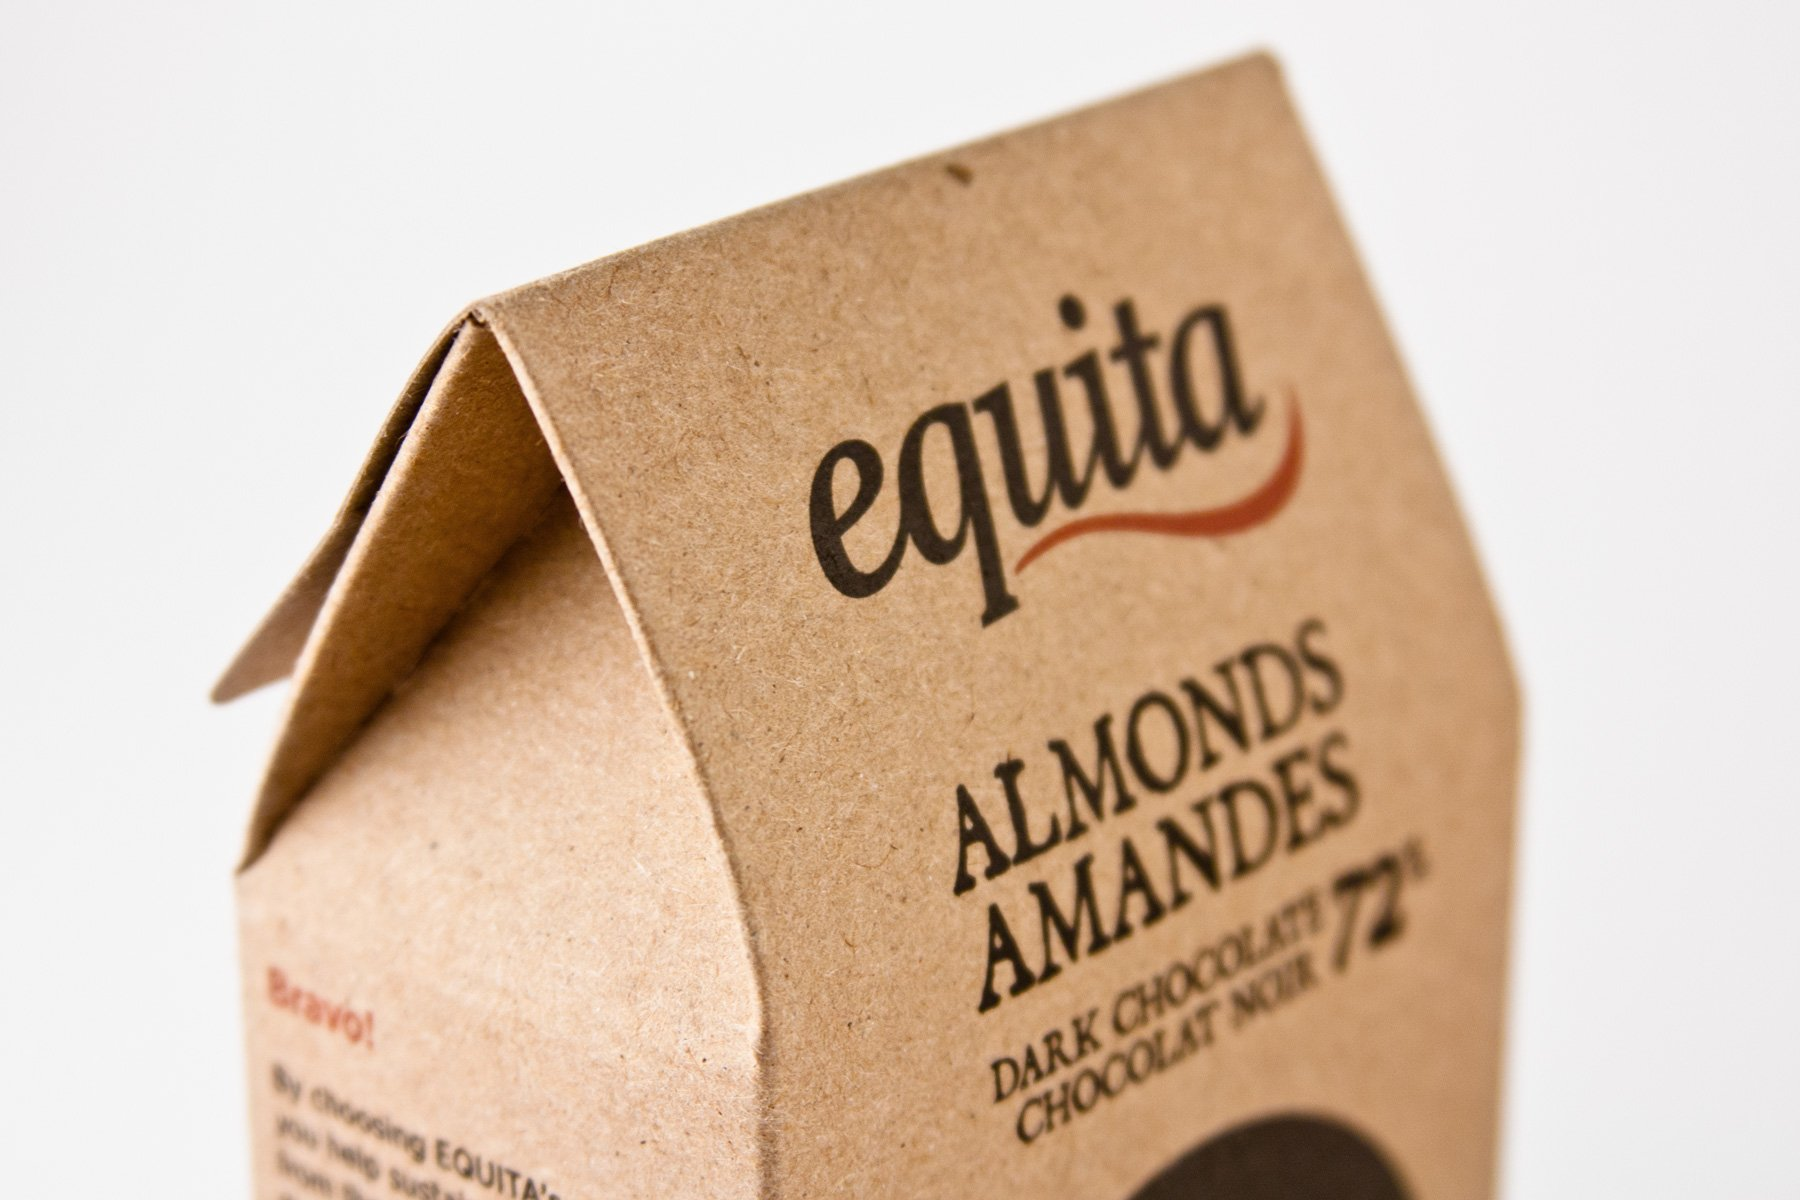 EQI-Packaging-Amandes-Chocolat-4 Equita - Identité